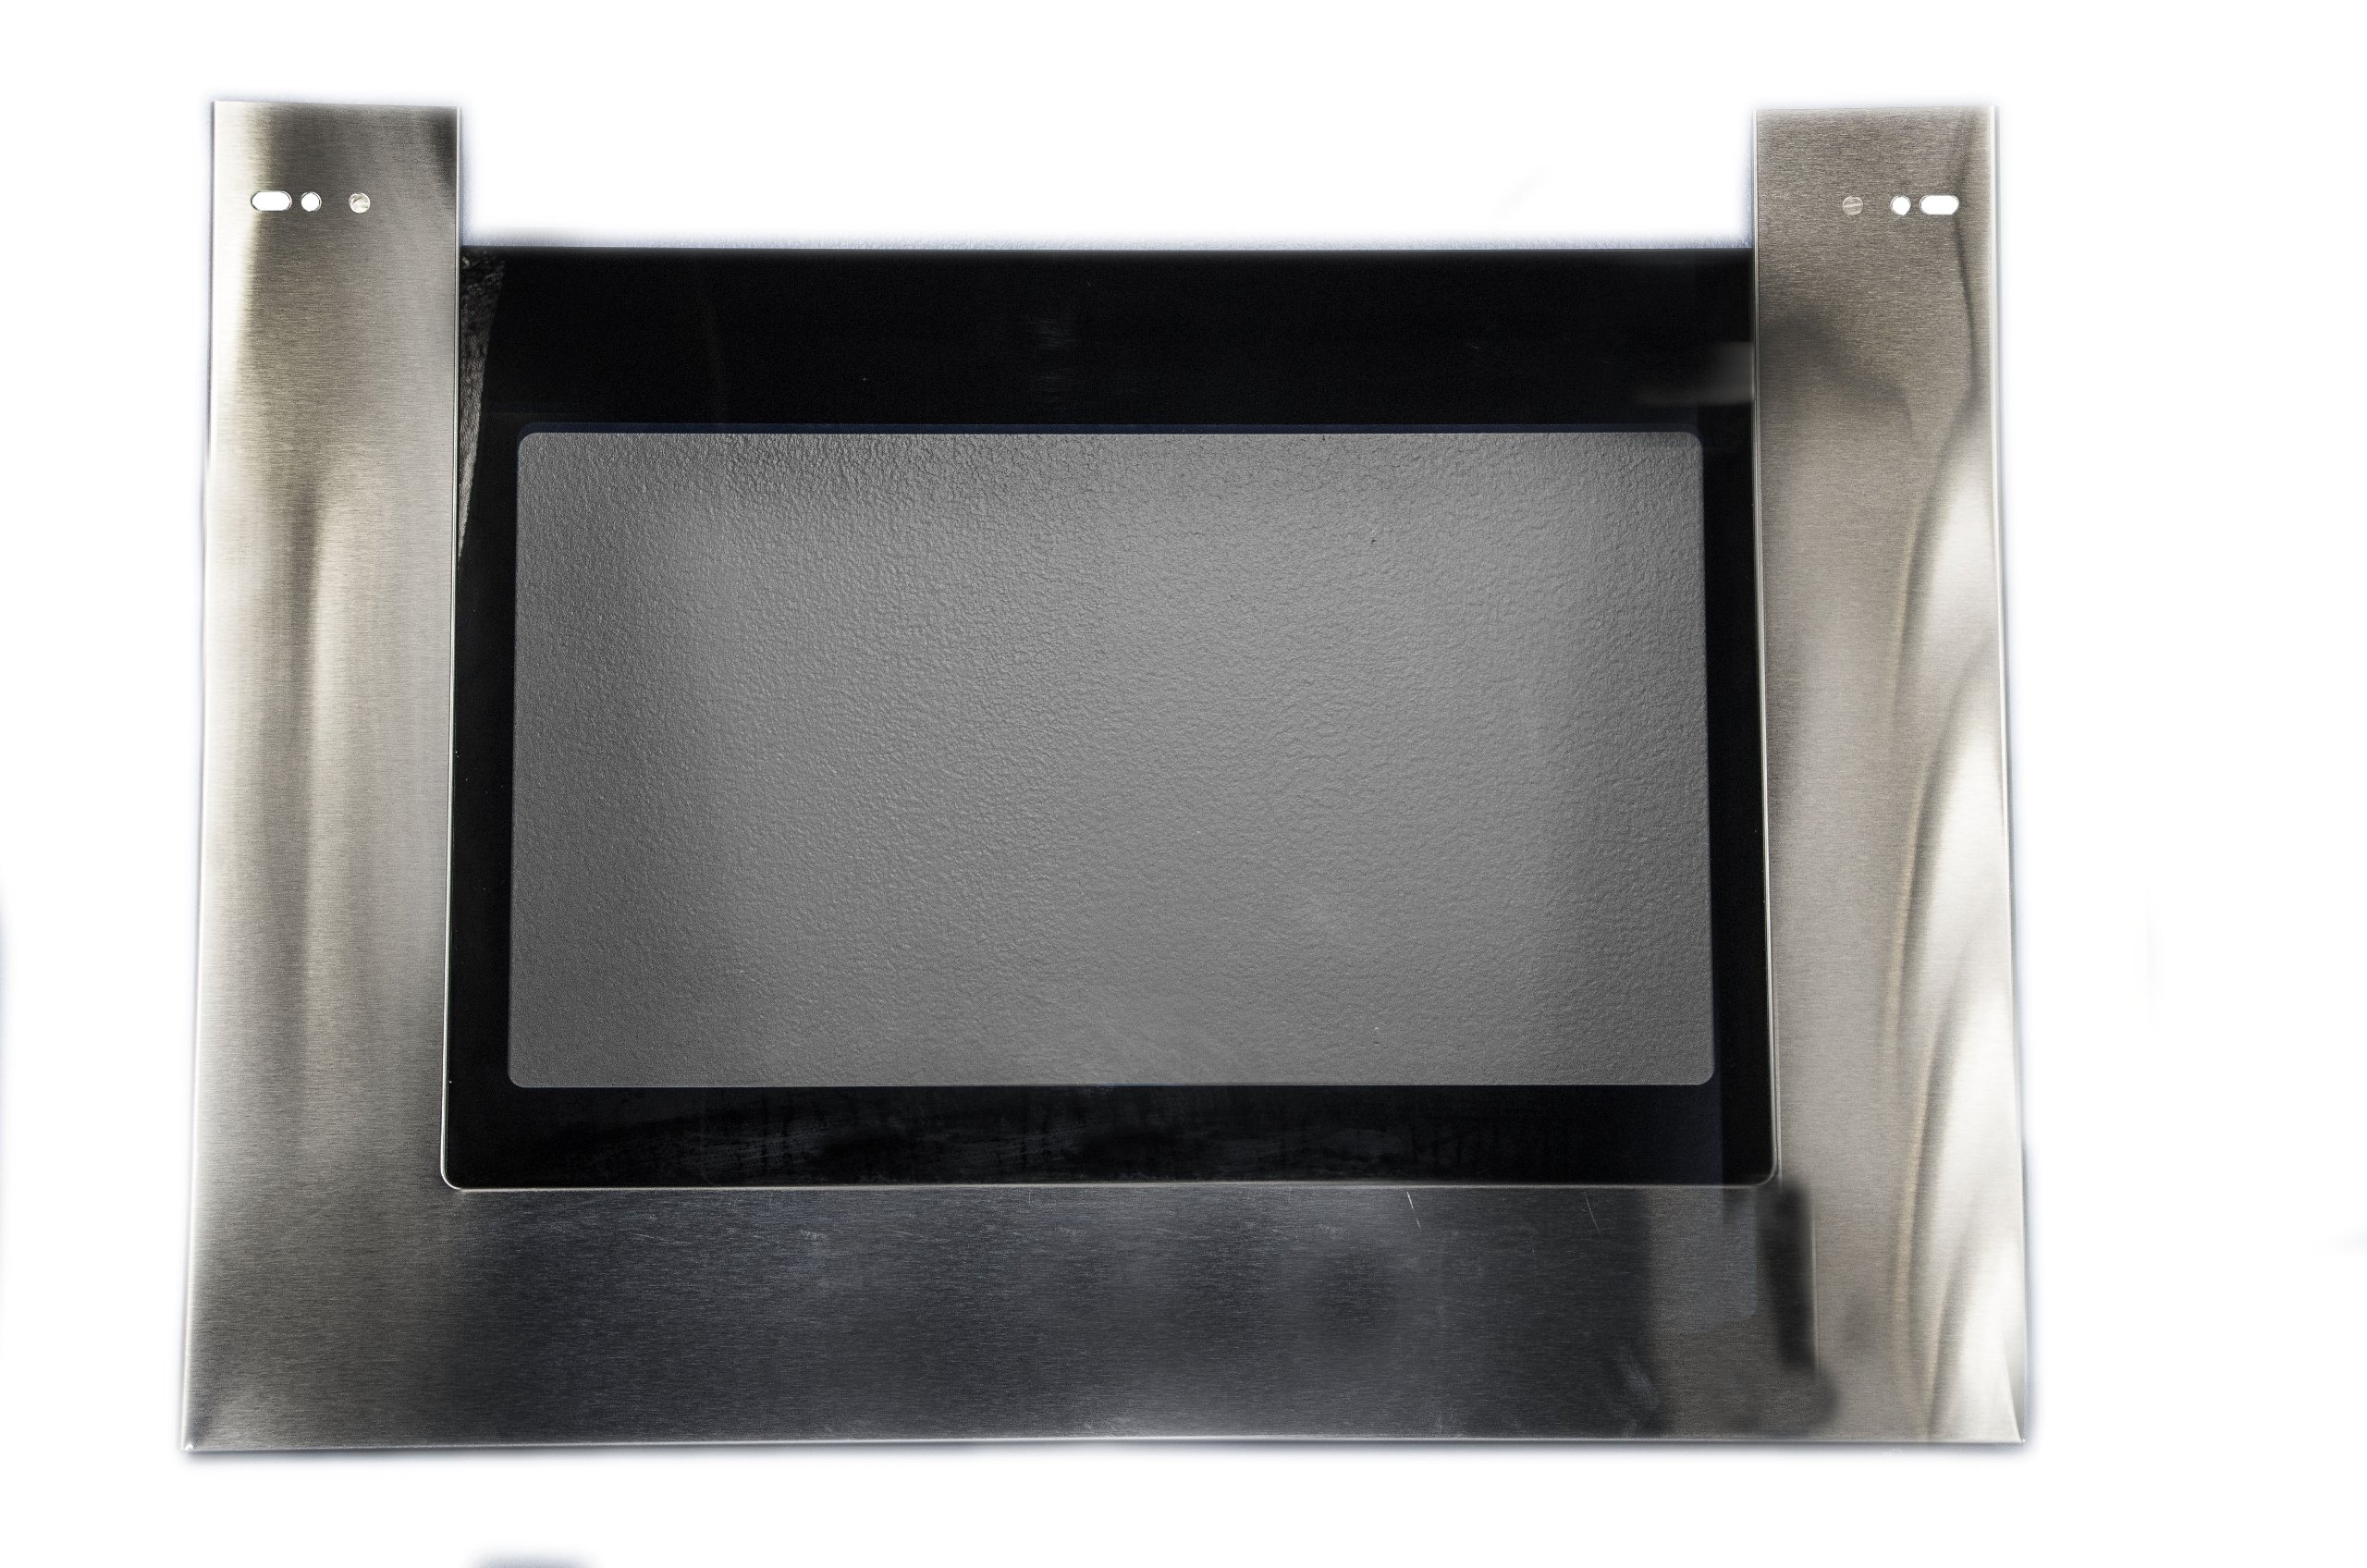 LG Electronics ACQ73322901 Gas Range Door Front and Window Cover Assembly